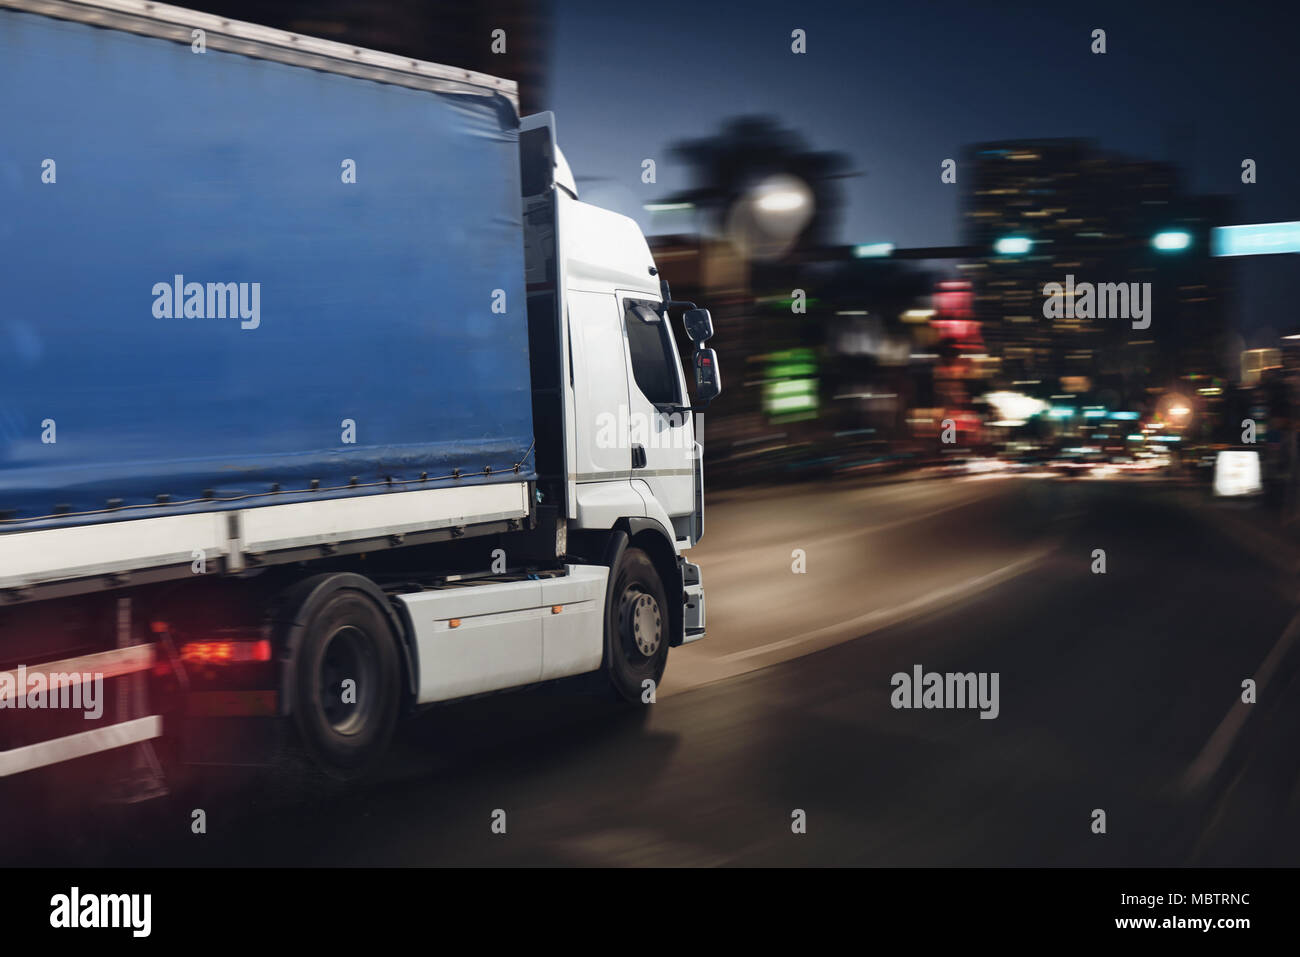 Fast truck on a city road delivering at night - Stock Image